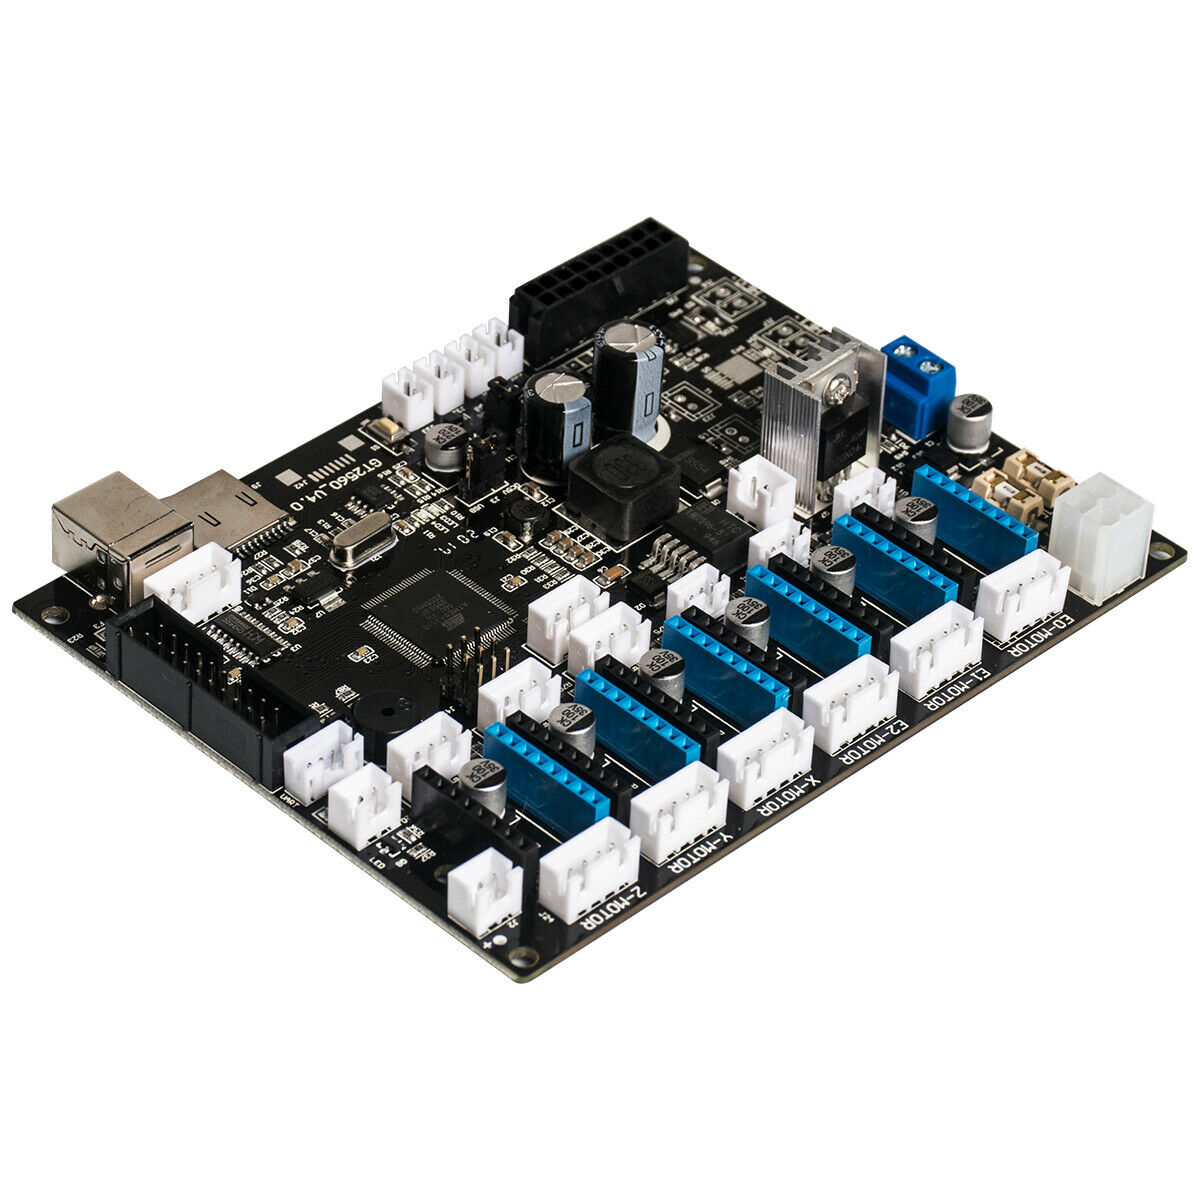 Geeetech GT2560 V4.0 Control Board for A10T A20T 3D Printer Mixed Color